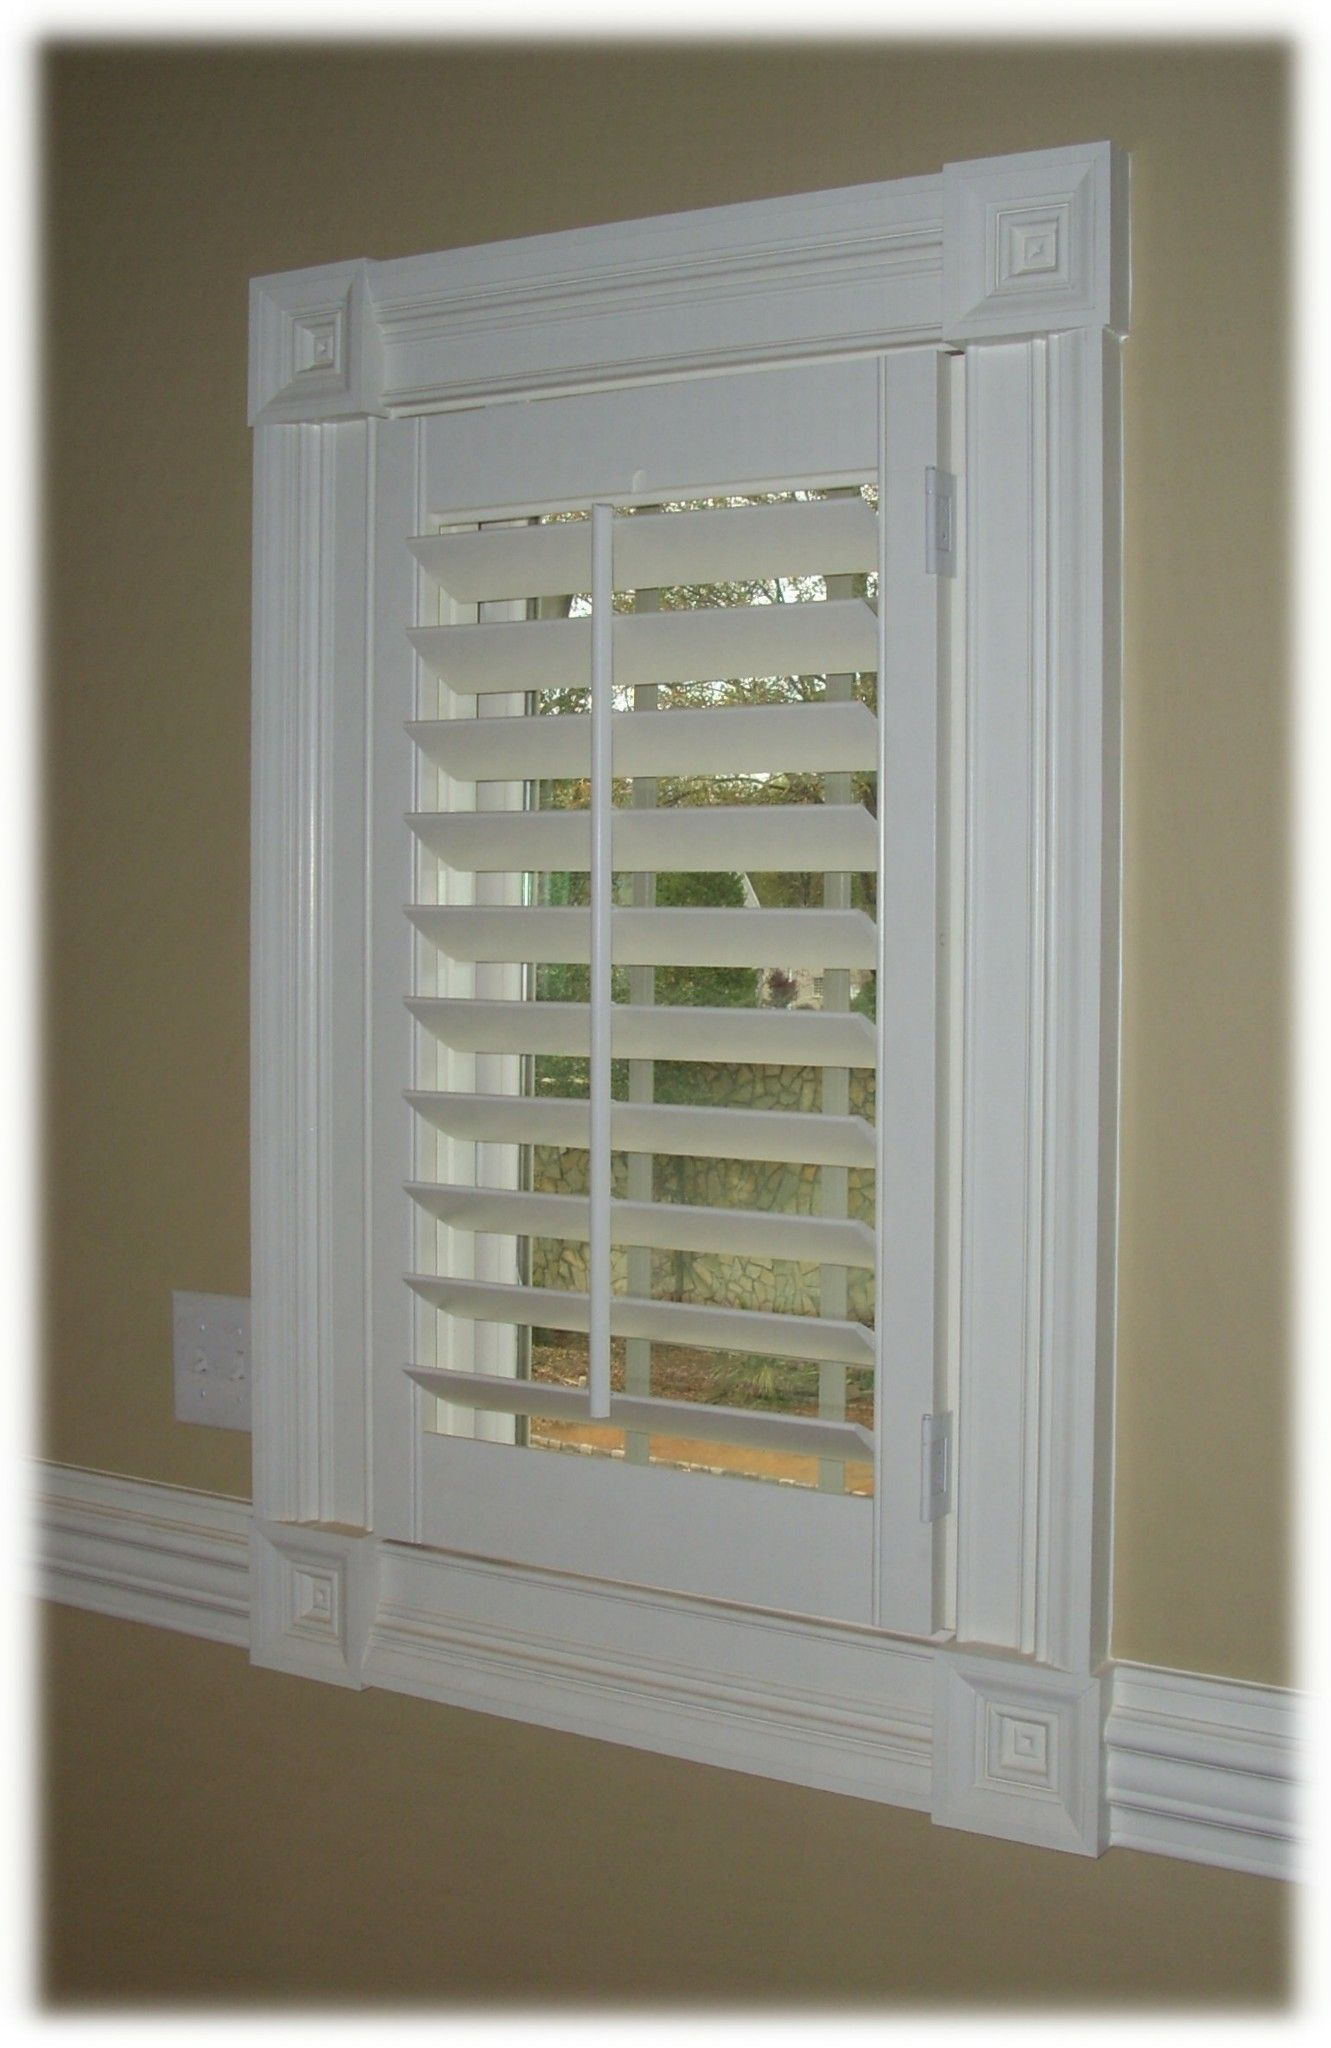 Homesecuritywindows curtains blinds and shutters window shutters small window curtains wood shutters